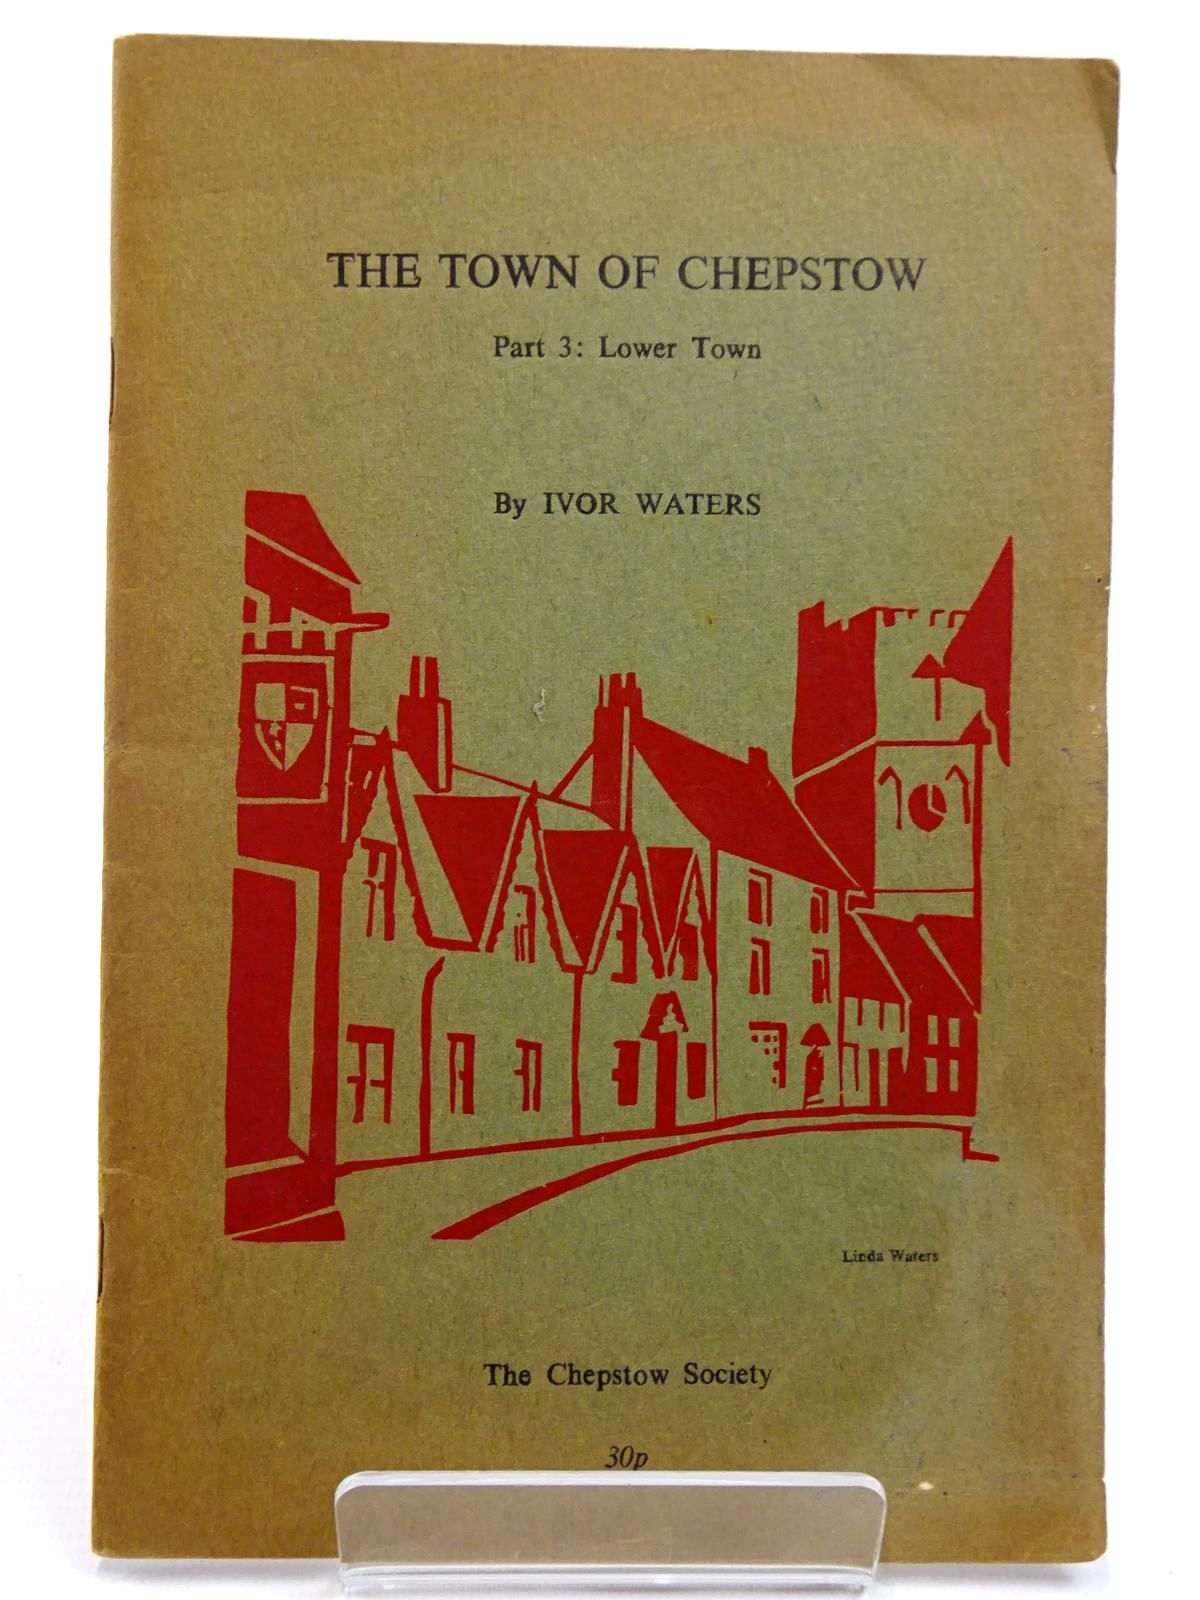 Photo of THE TOWN OF CHEPSTOW PART 3 written by Waters, Ivor illustrated by Waters, Mercedes published by The Chepstow Society (STOCK CODE: 2130913)  for sale by Stella & Rose's Books